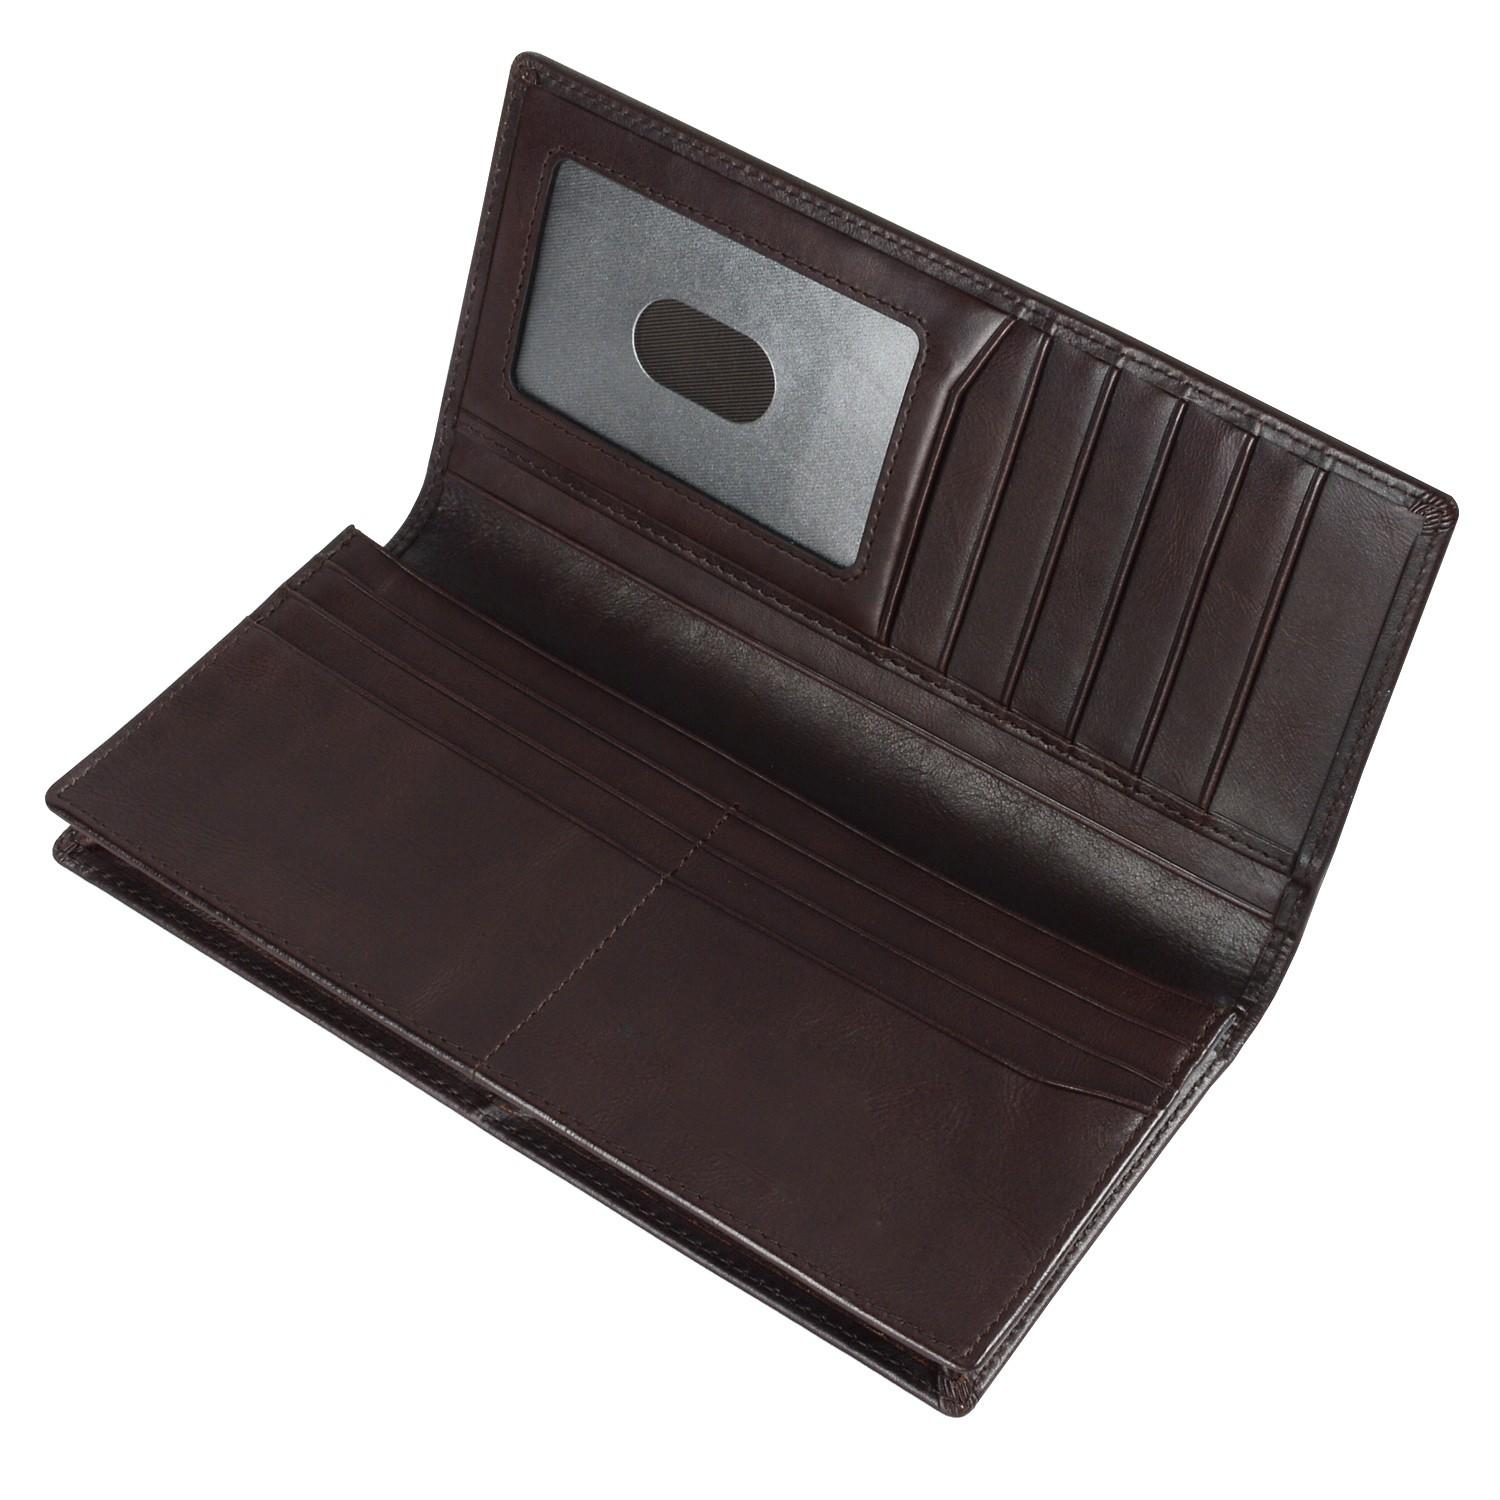 AIVI leather card wallet factory for iphone 8 / 8plus-3